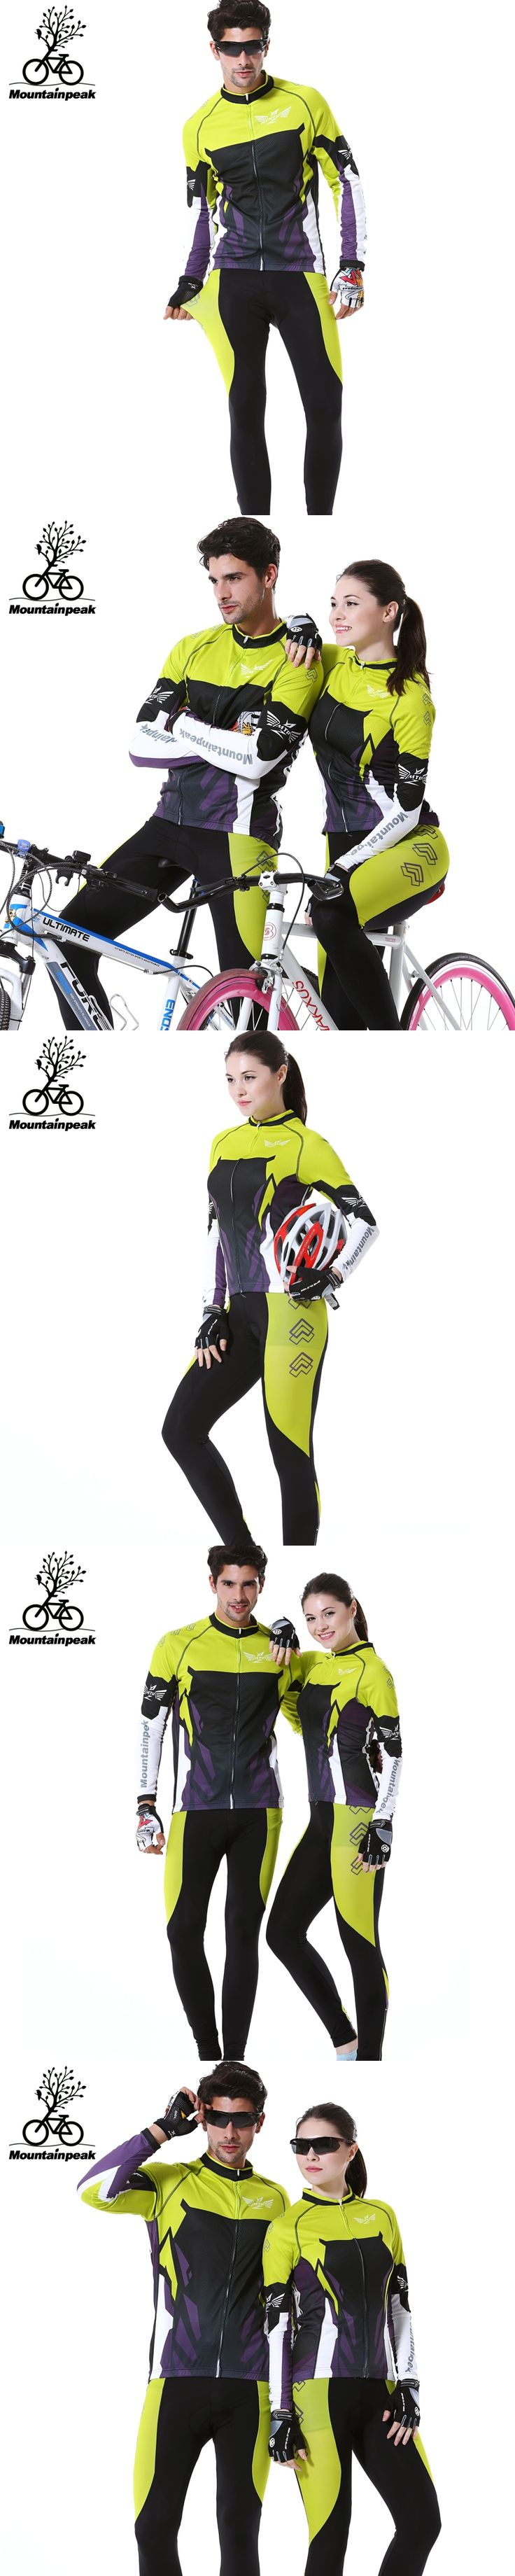 2016 New Arrival Autumn Men&Women Long Sleeve Cycling Jerseys Suits MTB Road Bike Riding Clothing Sports Jersey Coats Pants Sets